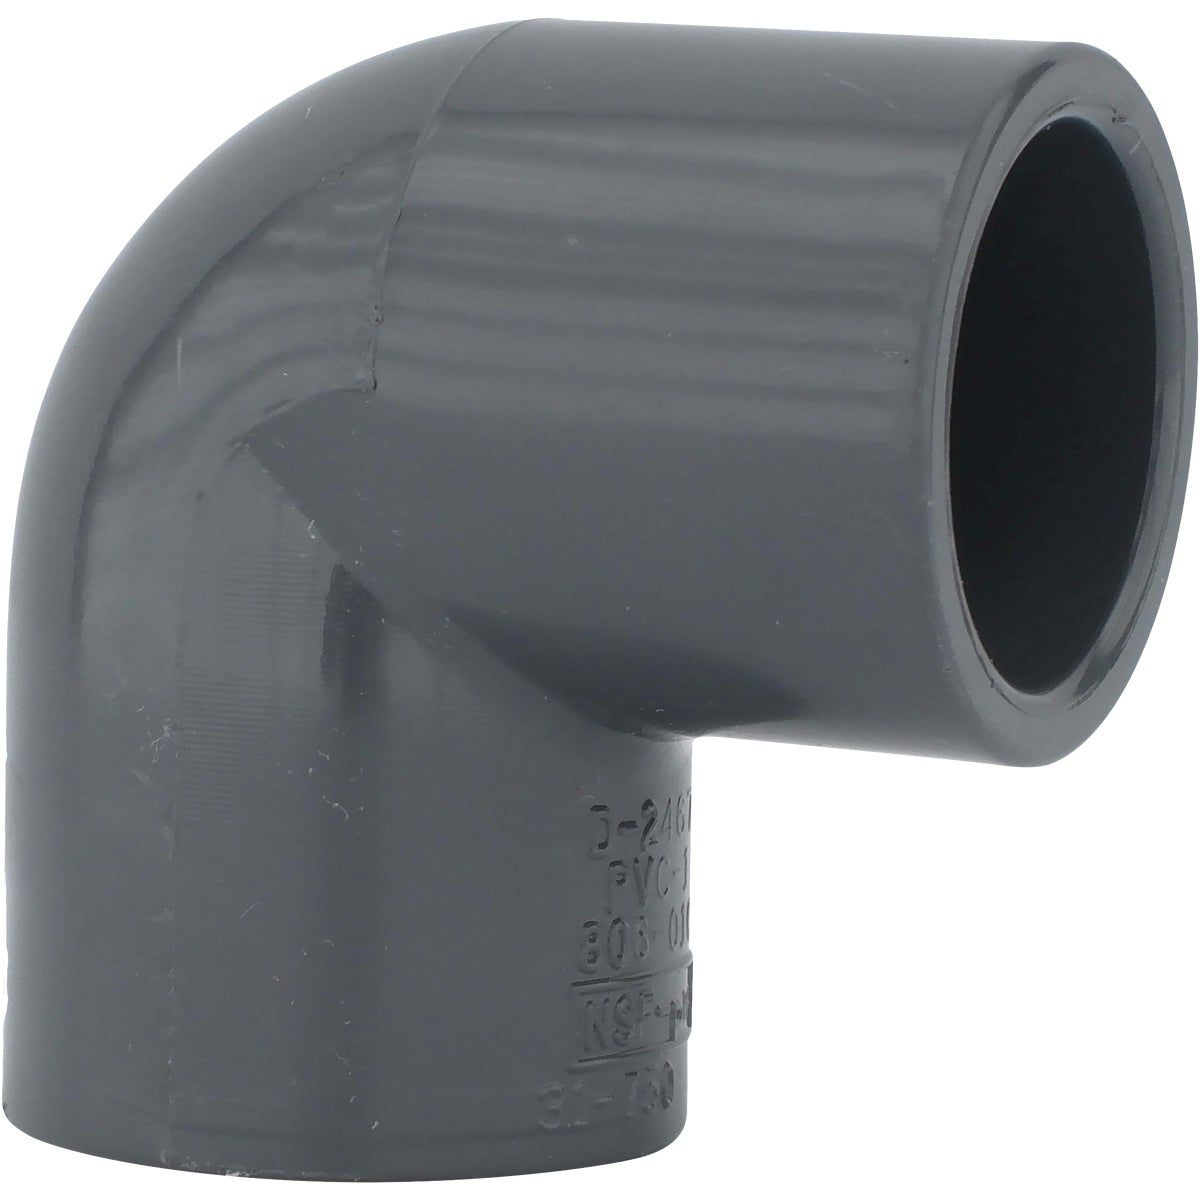 "1-1/2"" 90D SCH80 ELBOW - 307158 by Genova Inc"